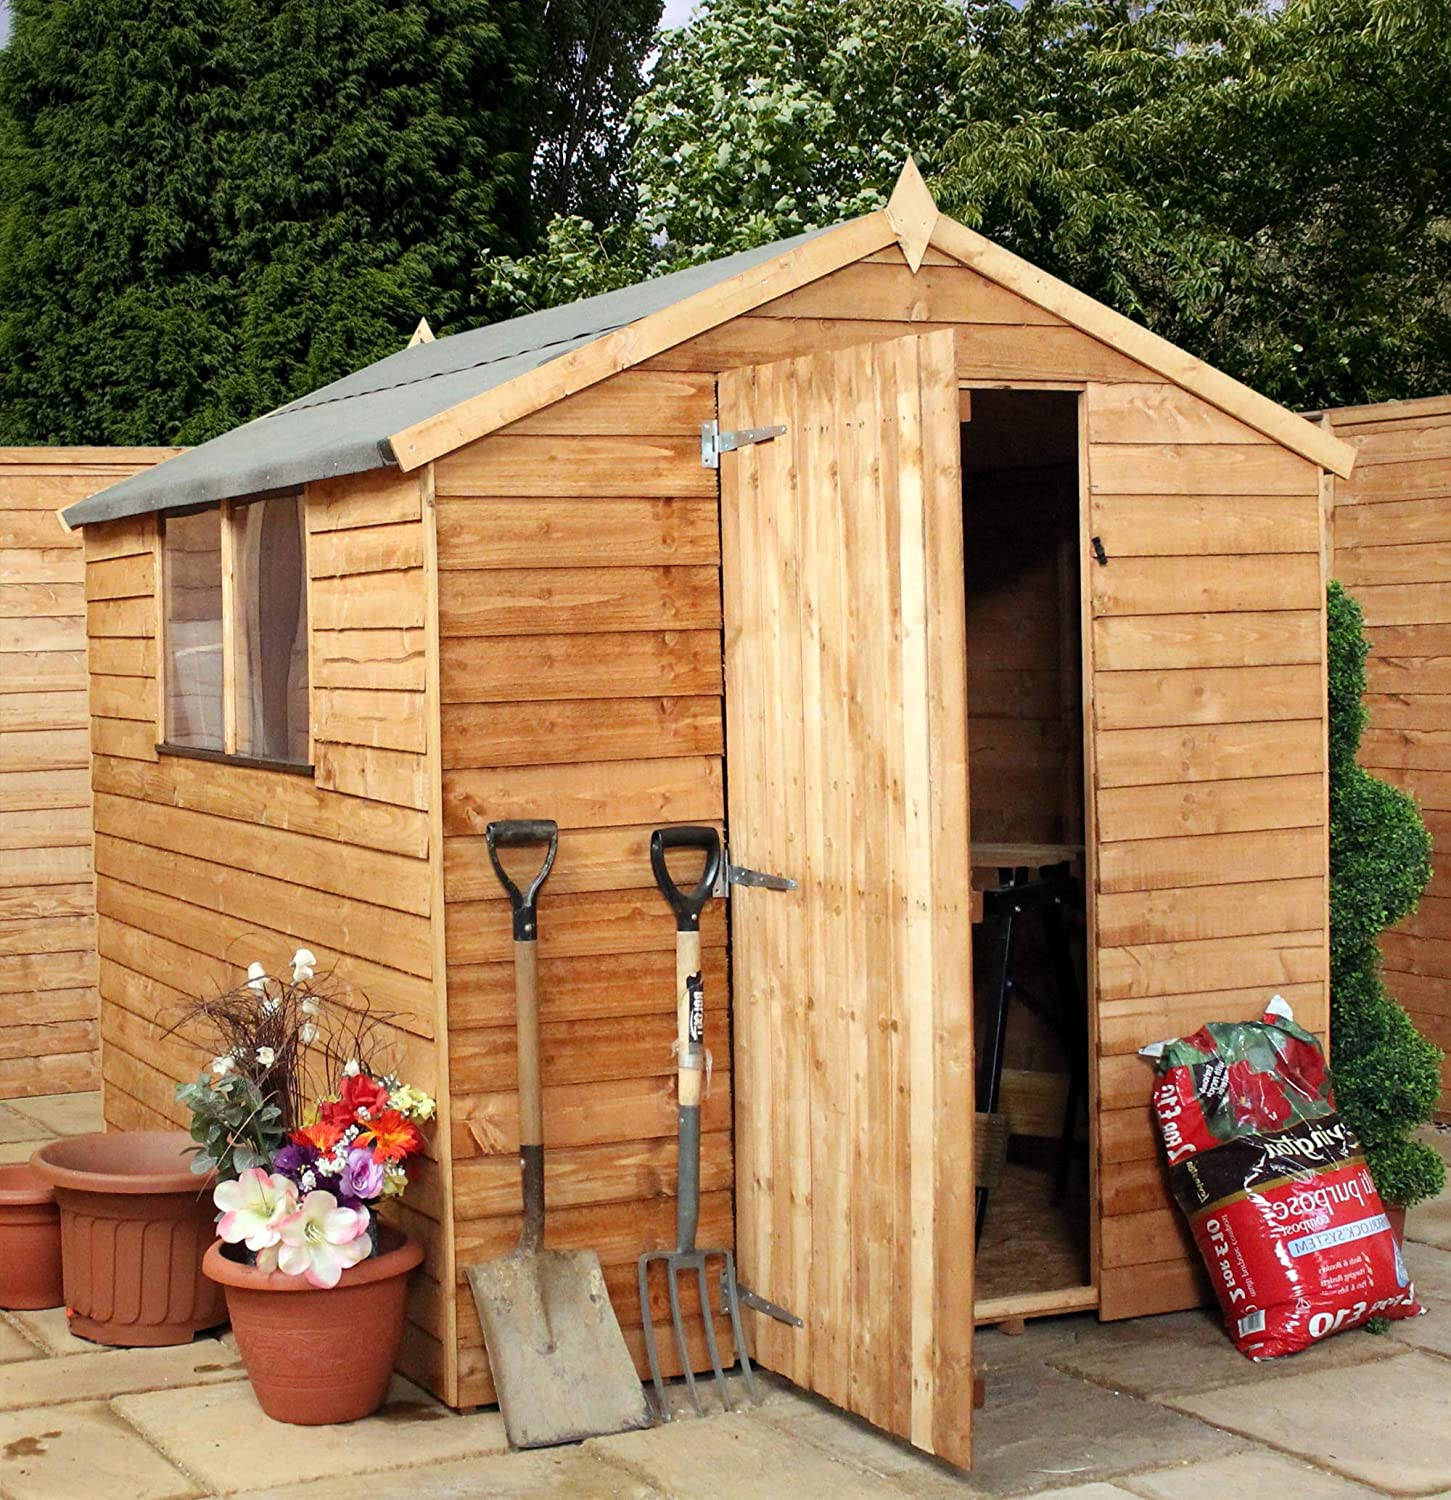 mercia 8 x 6 overlap apex wooden garden shed with single door and felt amazoncouk garden outdoors - Garden Sheds With Windows